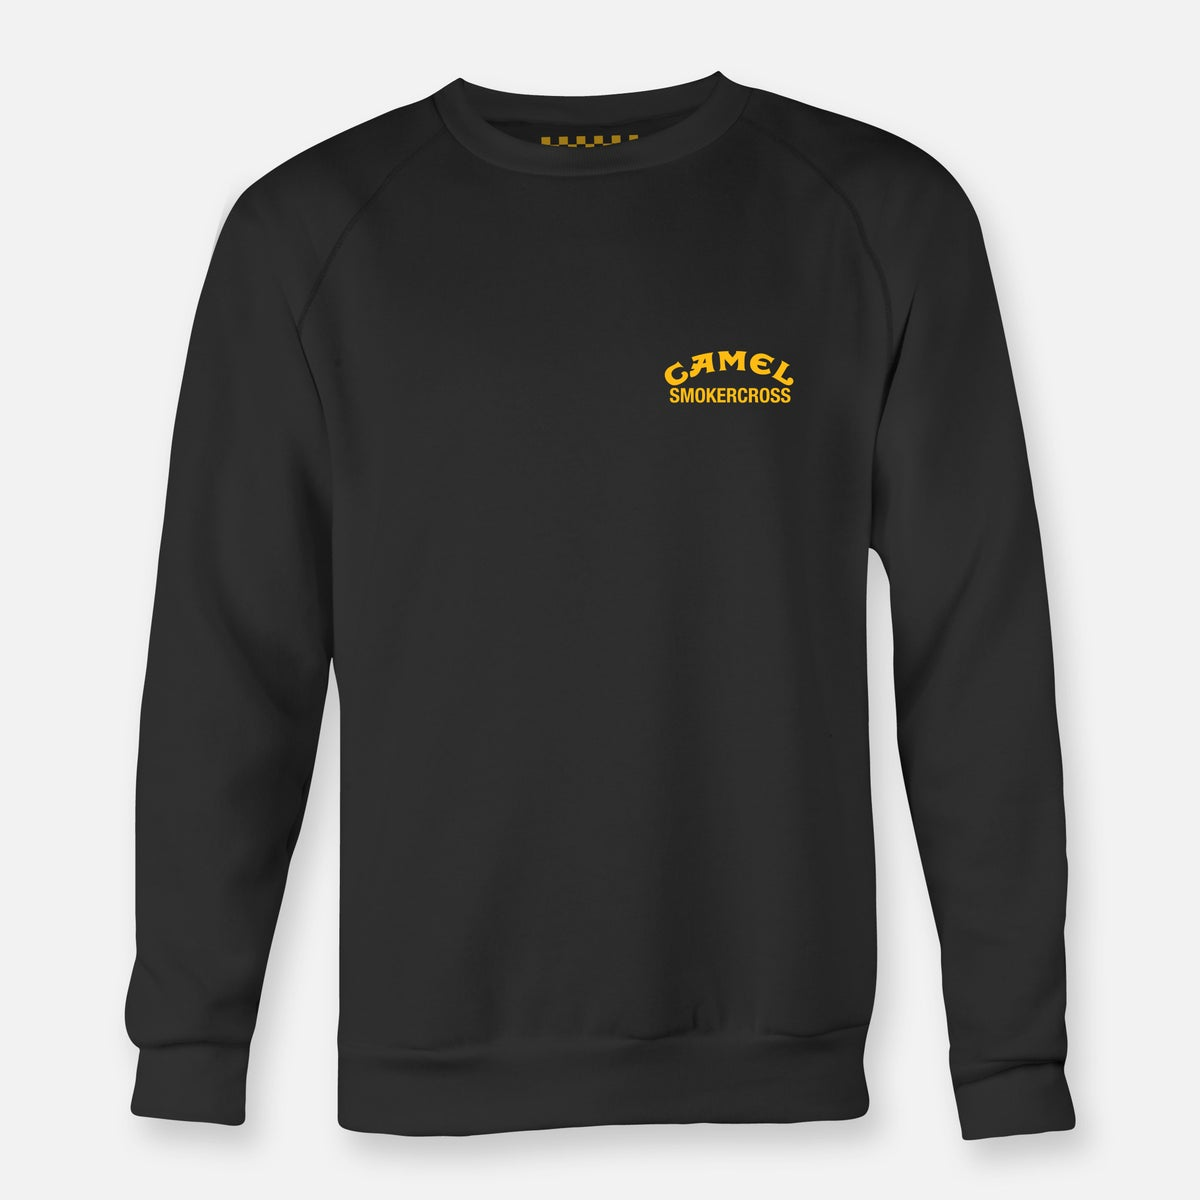 Image of CAMEL SMOKERCROSS SWEATSHIRT